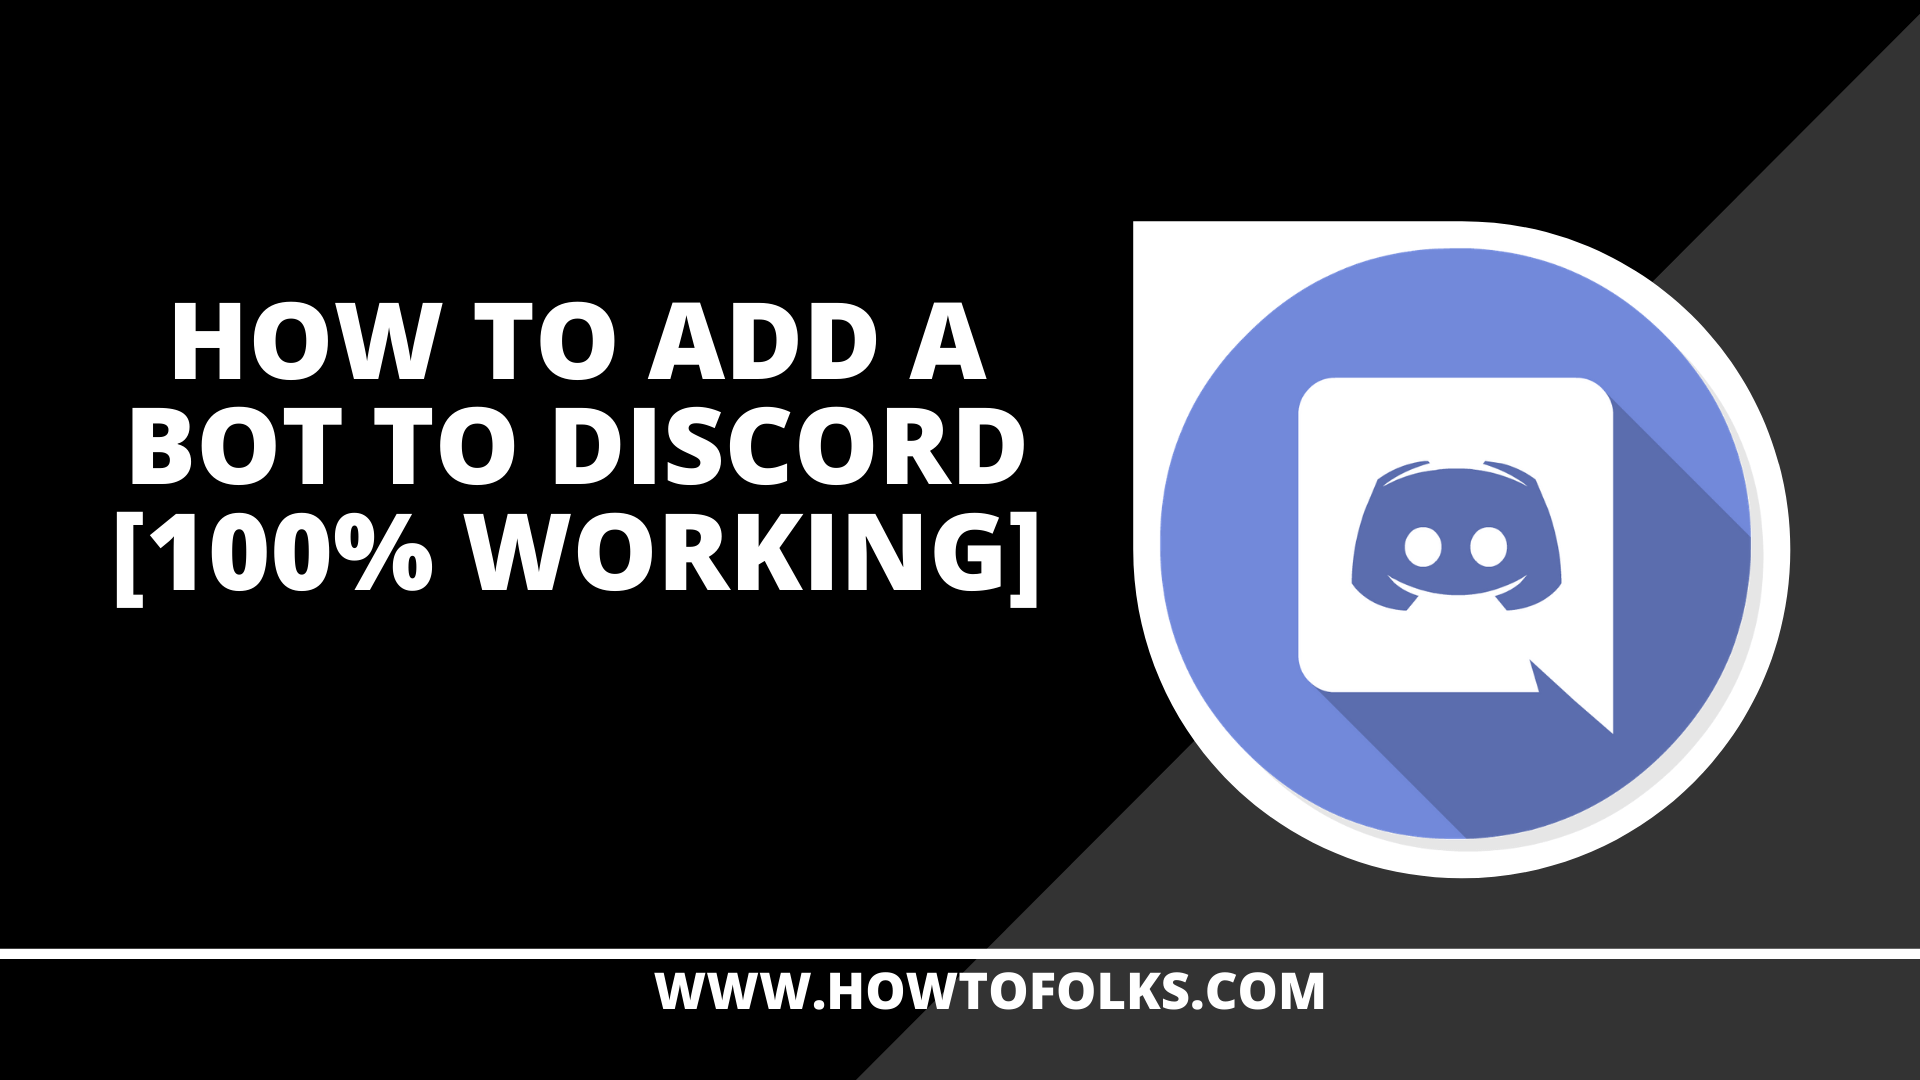 How To Add A Bot To Discord